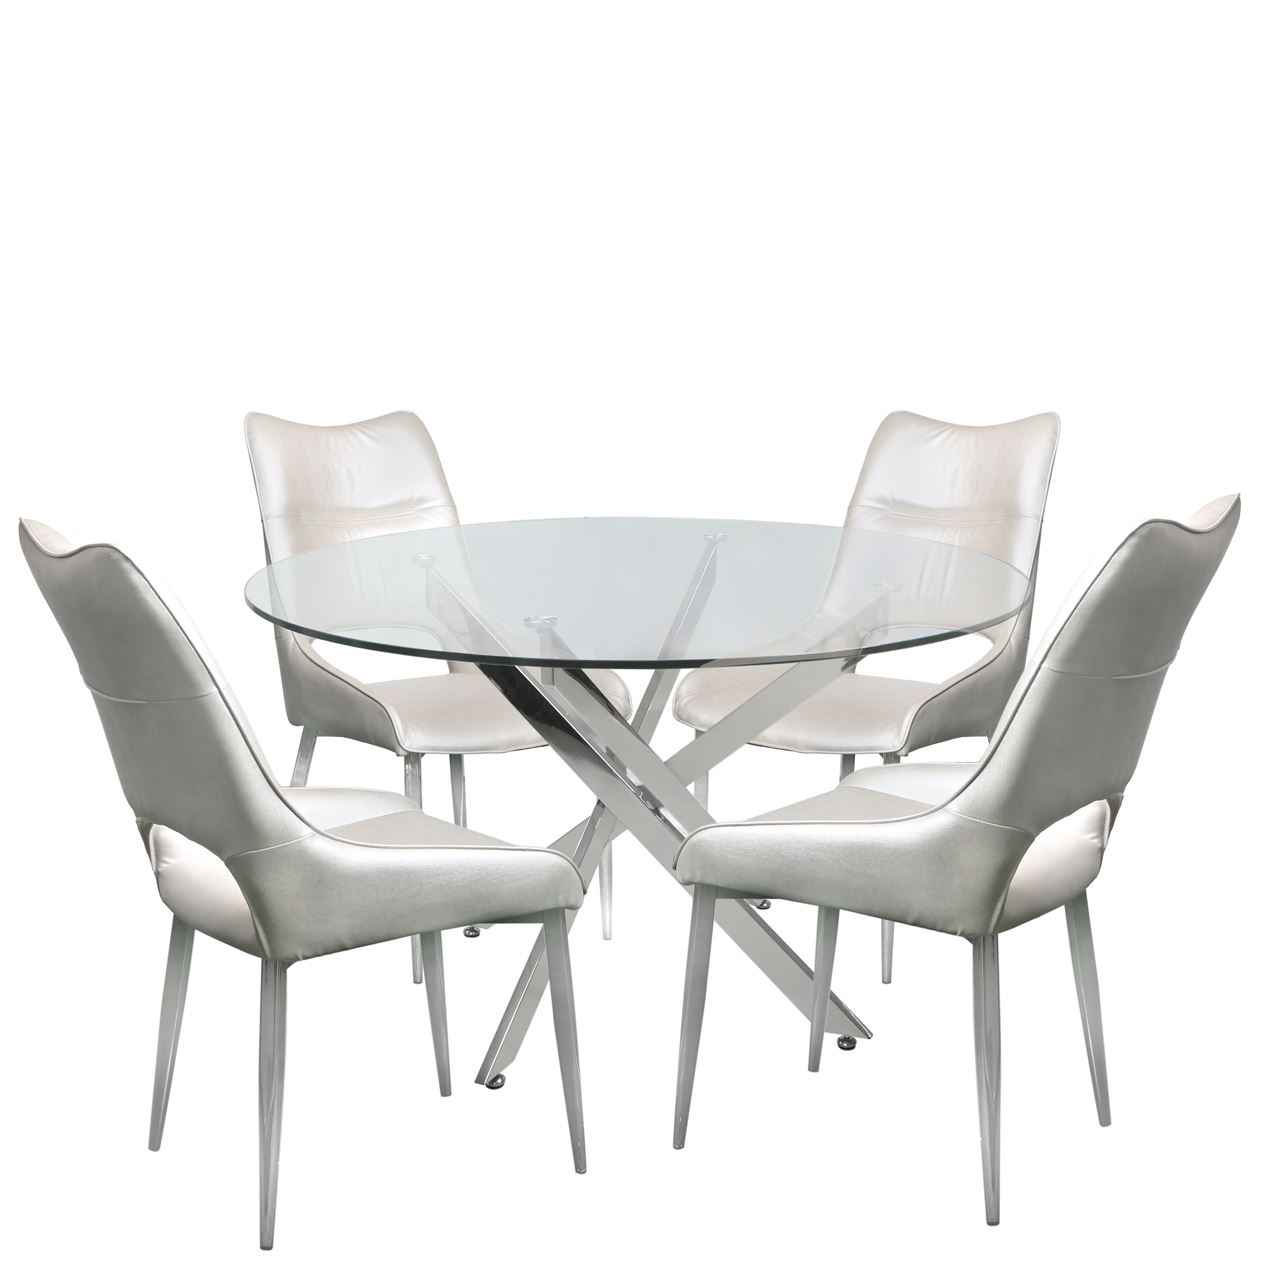 tempered glass steel chrome round dining table and 4 white adelaide rh ebay co uk Elegant Round Dining Tables and Chairs Round Glass Dining Table and Chairs